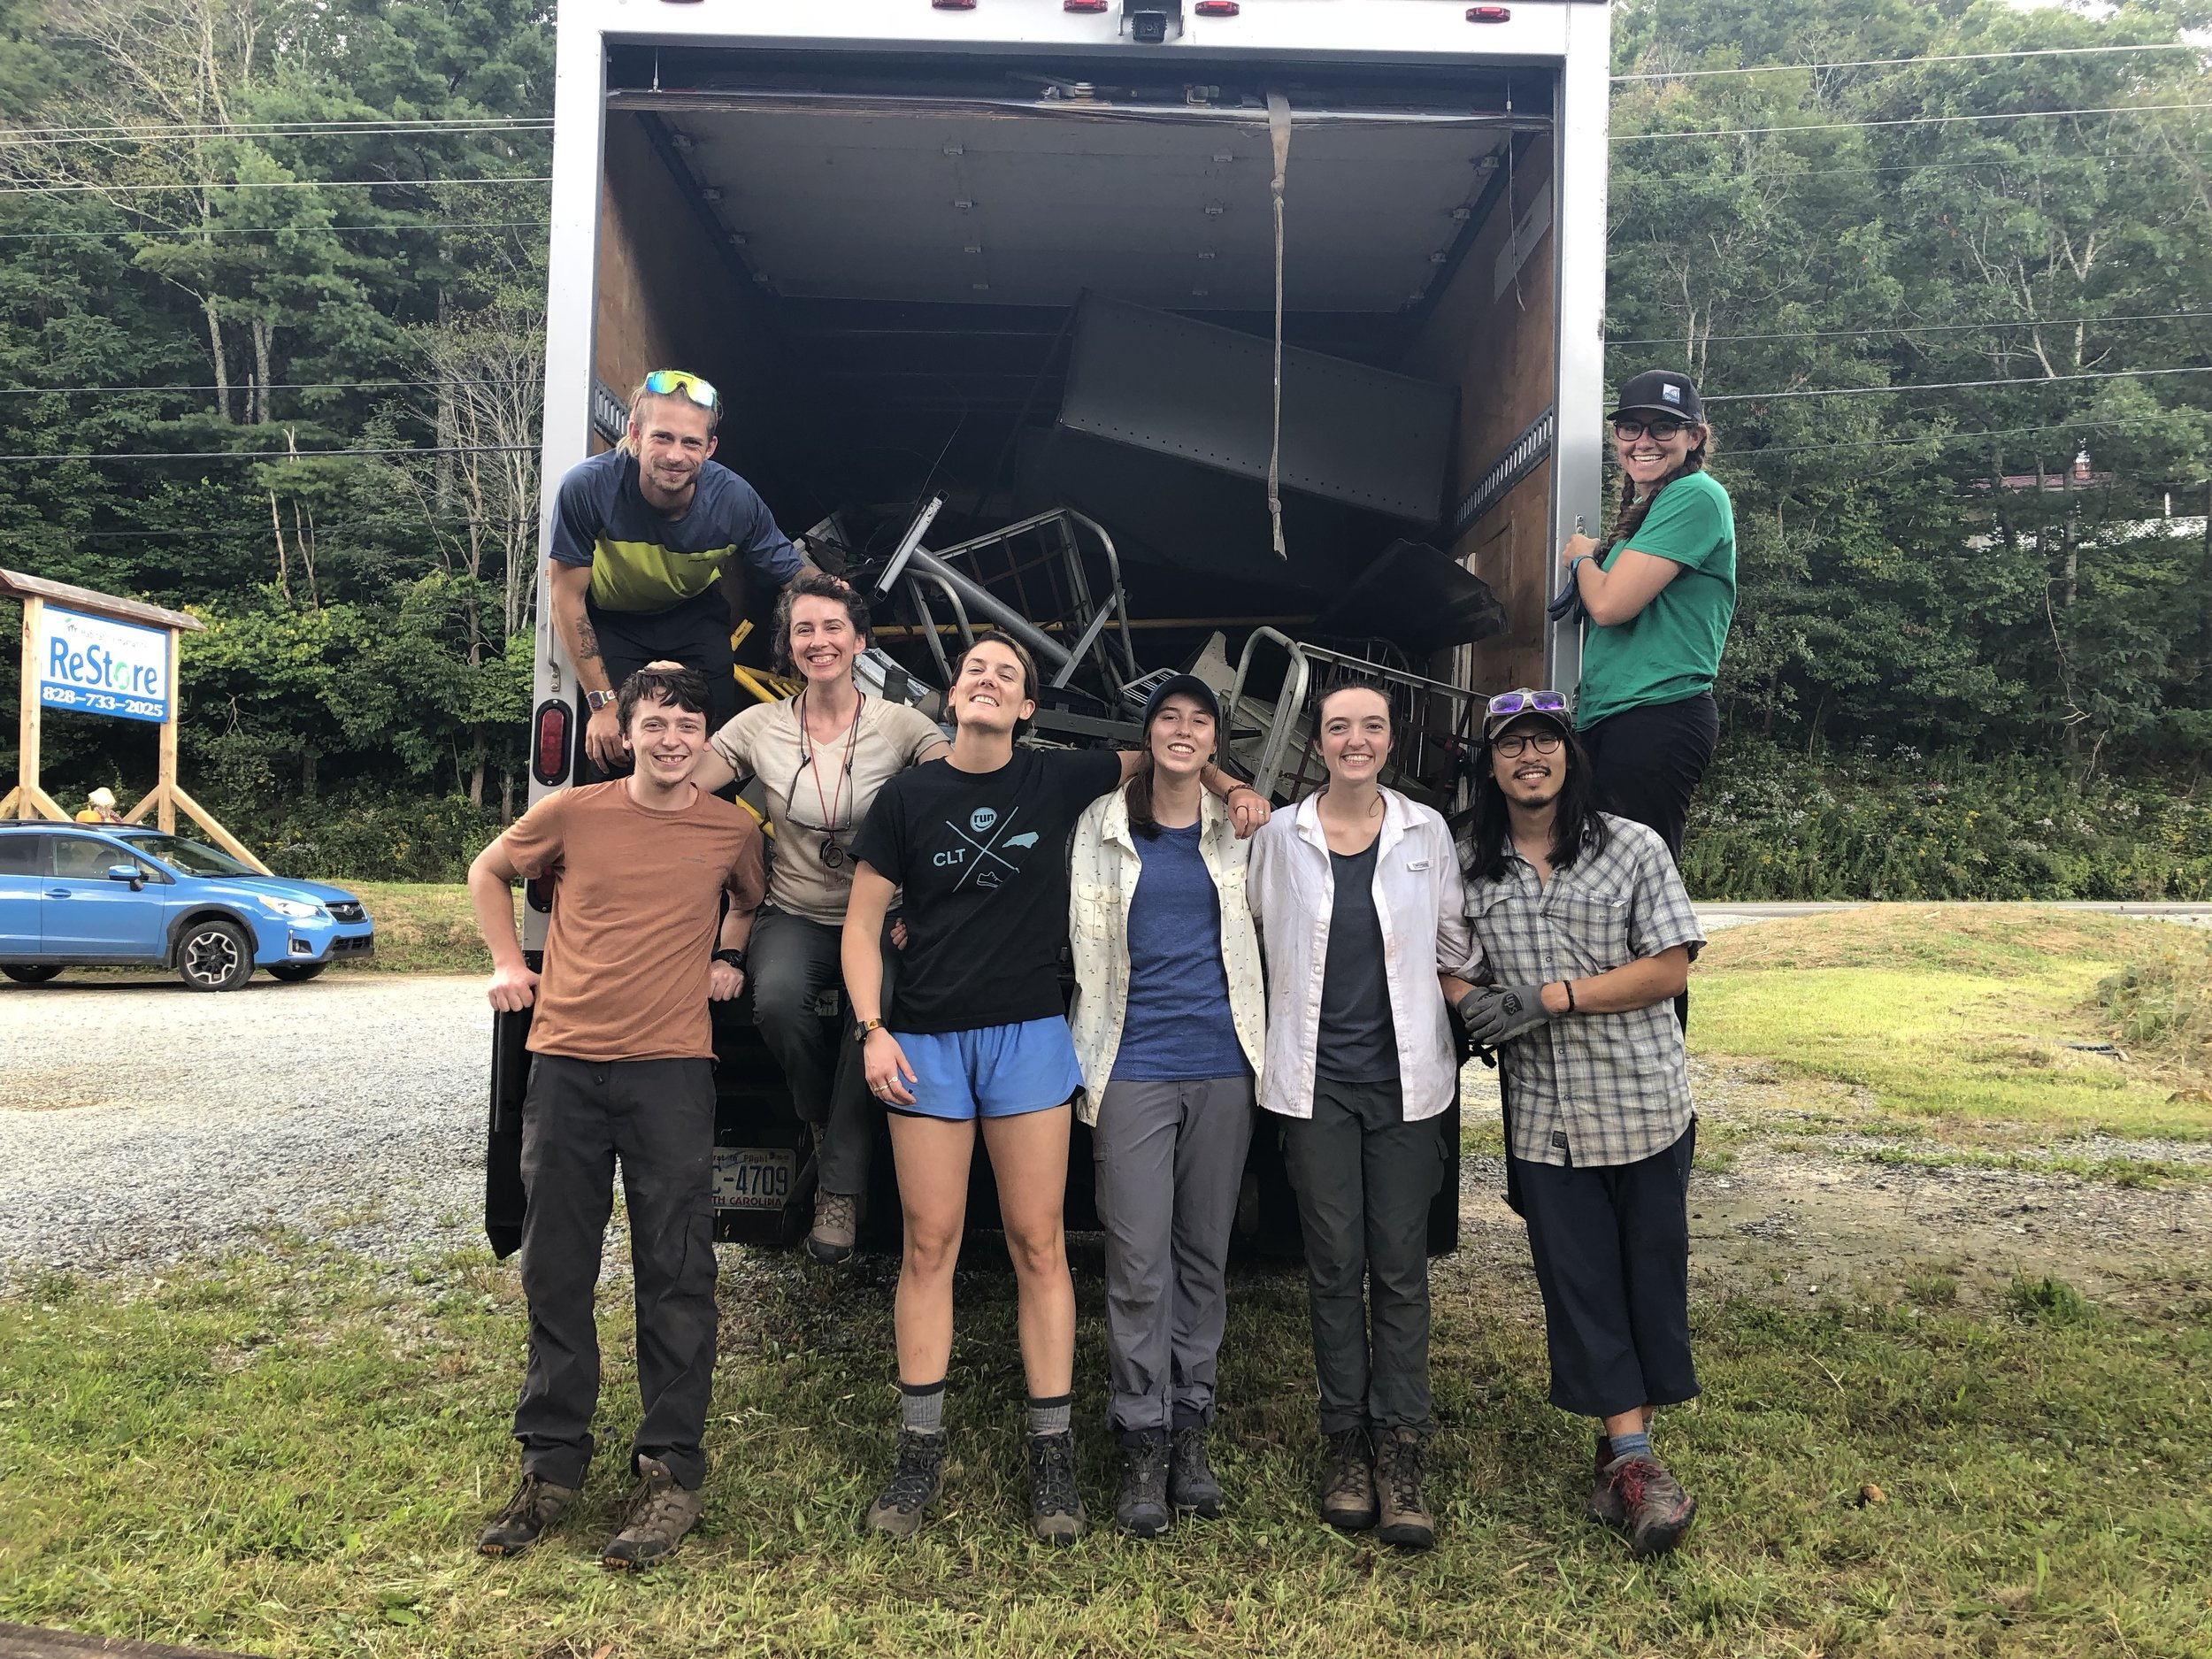 NC Outward bound - NC Outward Bound volunteered with us in late summer 2018 and helped us with a number of projects. They cleaned out our warehouse and helped to haul off metal at the ReStore.